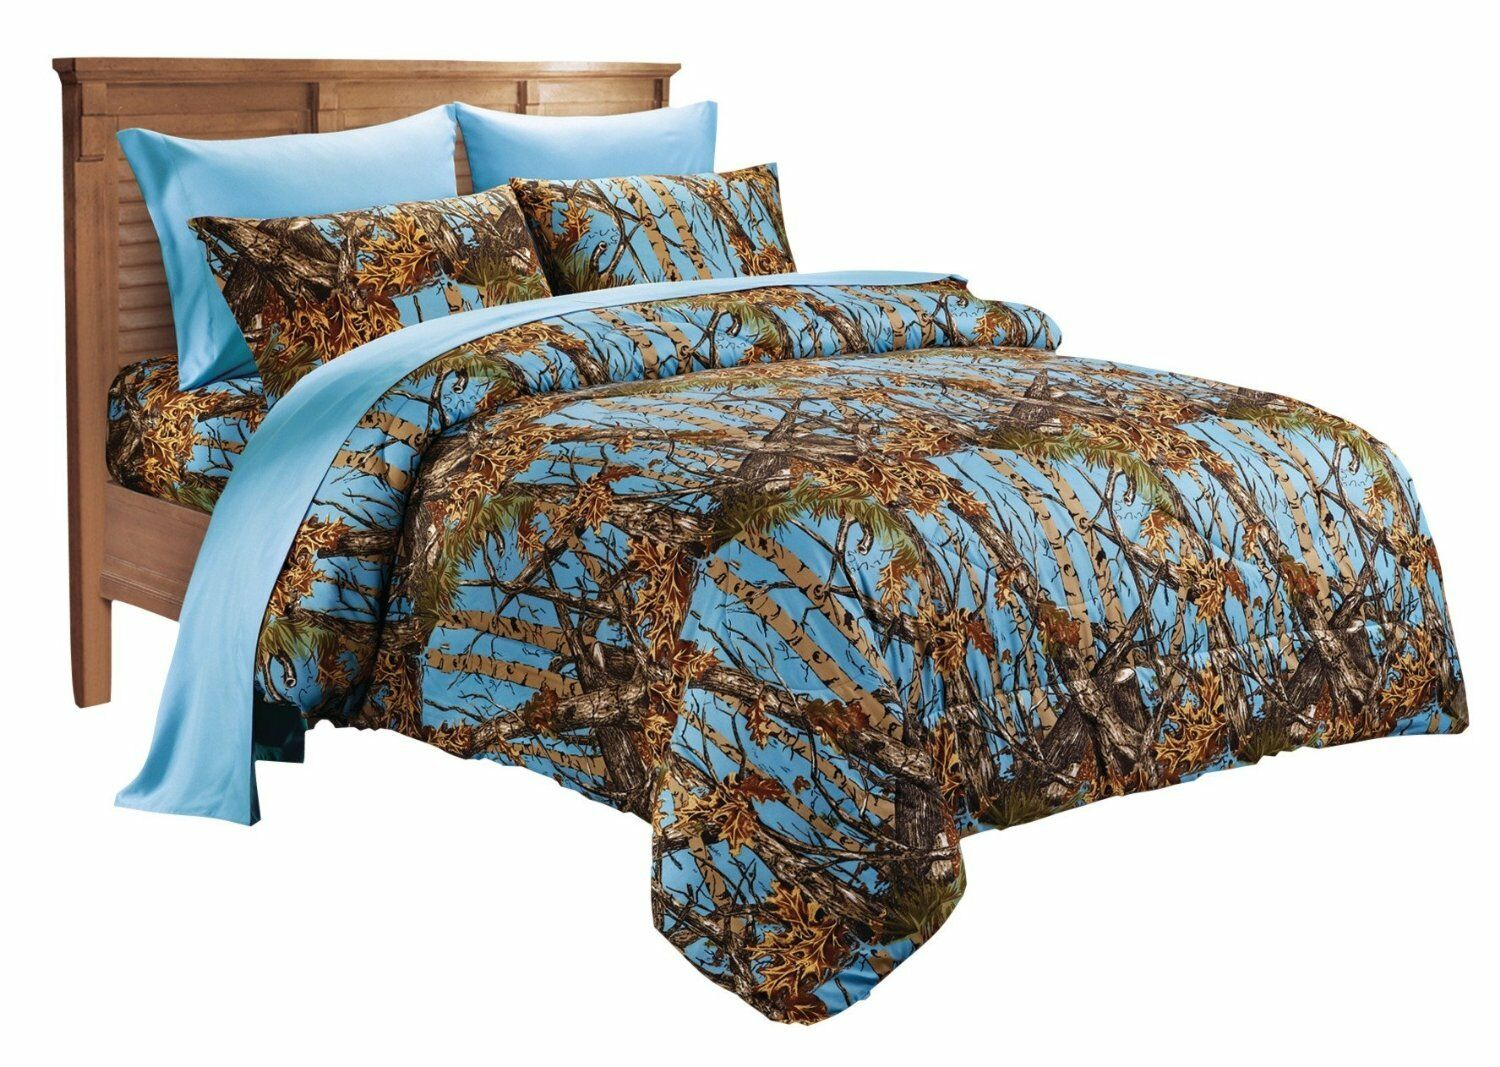 WOODS QUEEN QUEEN QUEEN Größe 7PC SET POWDER Blau CAMO COMFORTER SHEET CAMOUFLAGE BEDDING b4481d